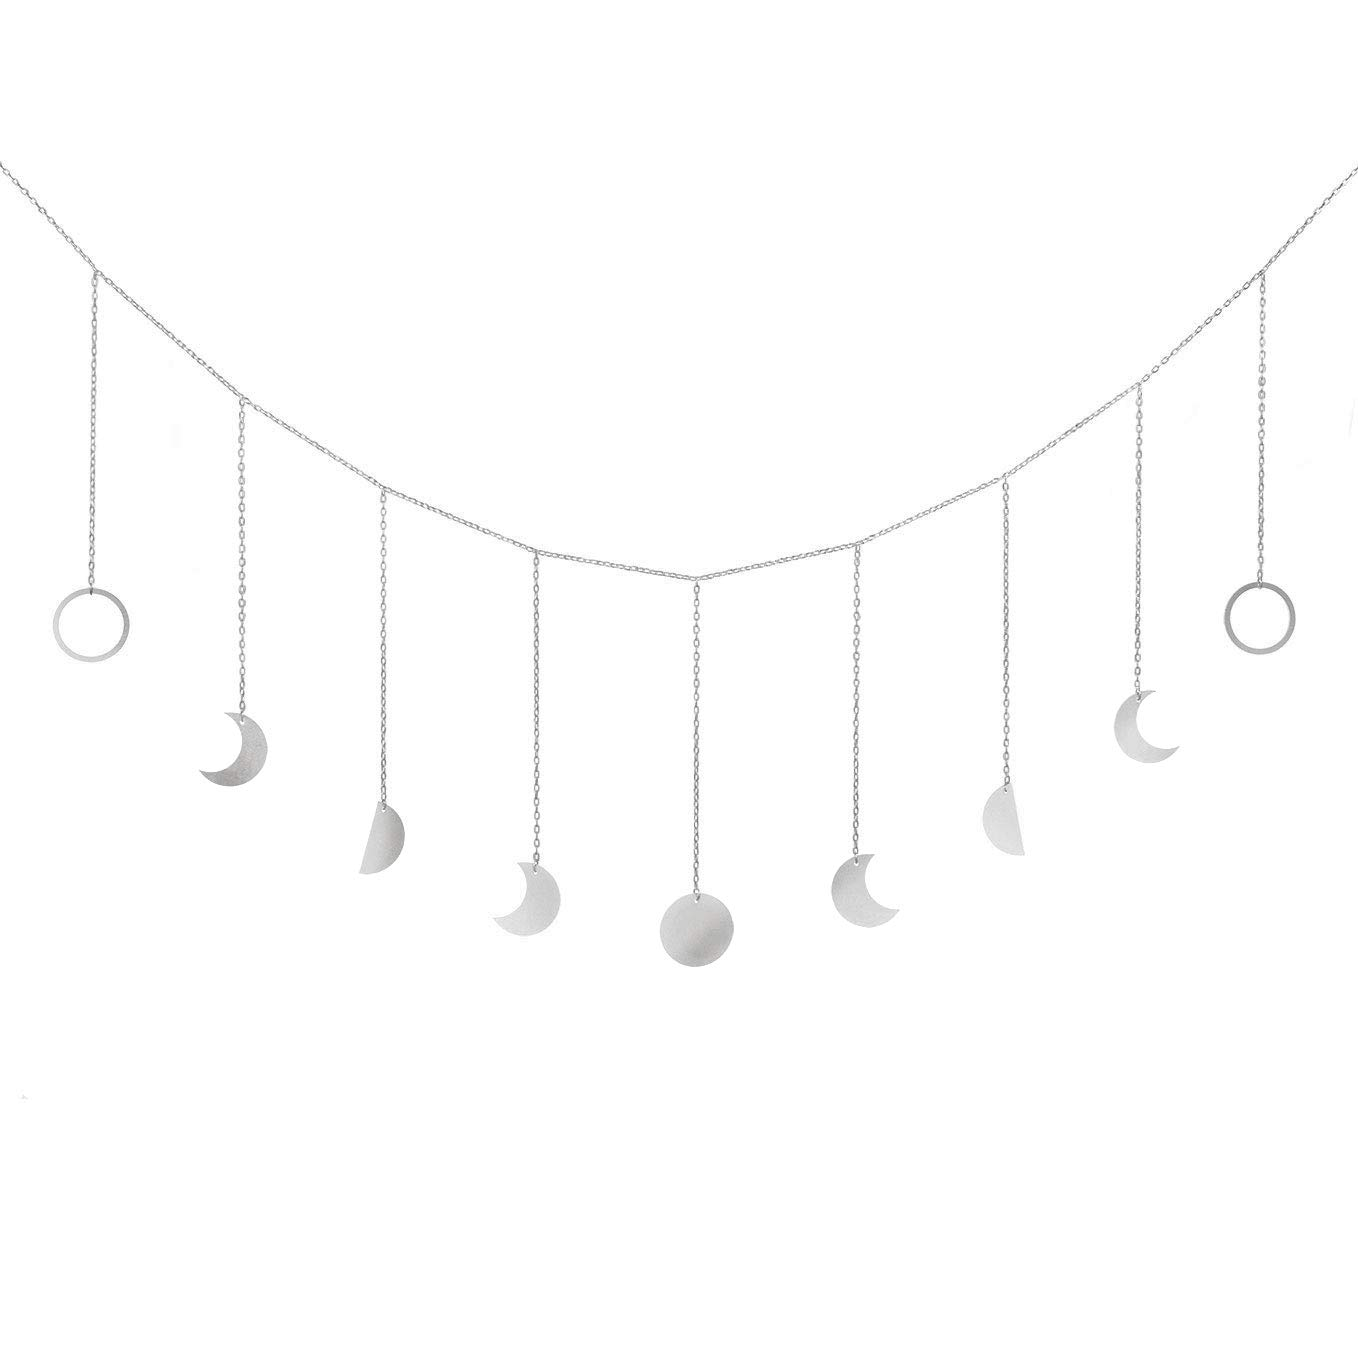 Mkono Moon Phase Garland with Chains Boho Shining